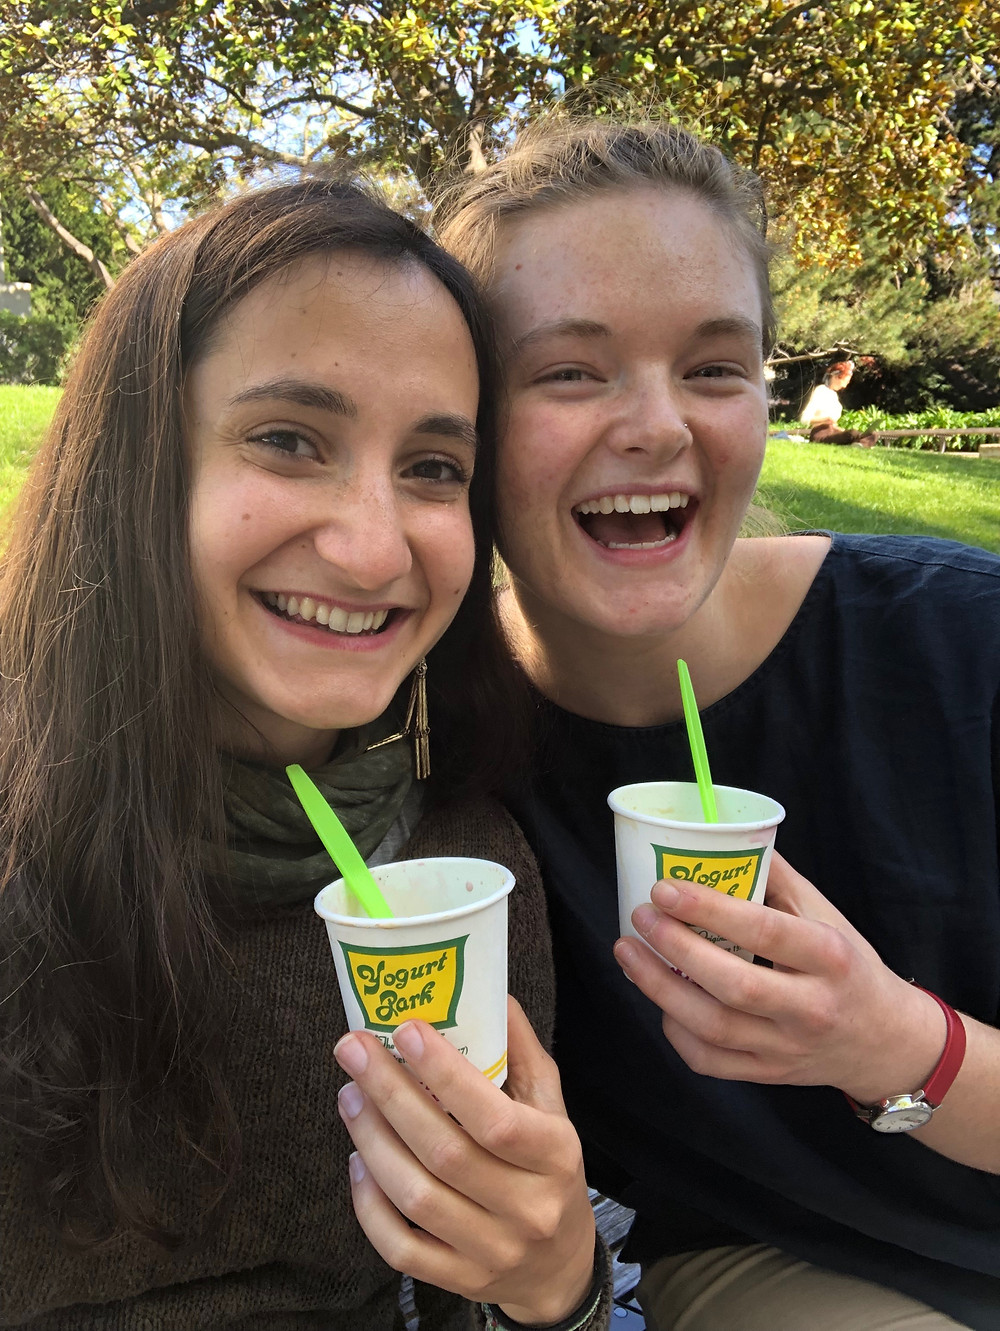 Yagmur and Tess smile at the camera, holding white paper cups that have Yogurt Park written on them in green and there is a florescent green plastic spoon in them. Yagmur has long brown hair, she is fair skinned, wears a dark green scarf and dark green top. Tess has a big smile on her face, has white skin and her hair in a bun. She wears a dark blue top. In the background is a grassy area and a big tree with many branches and green leaves.